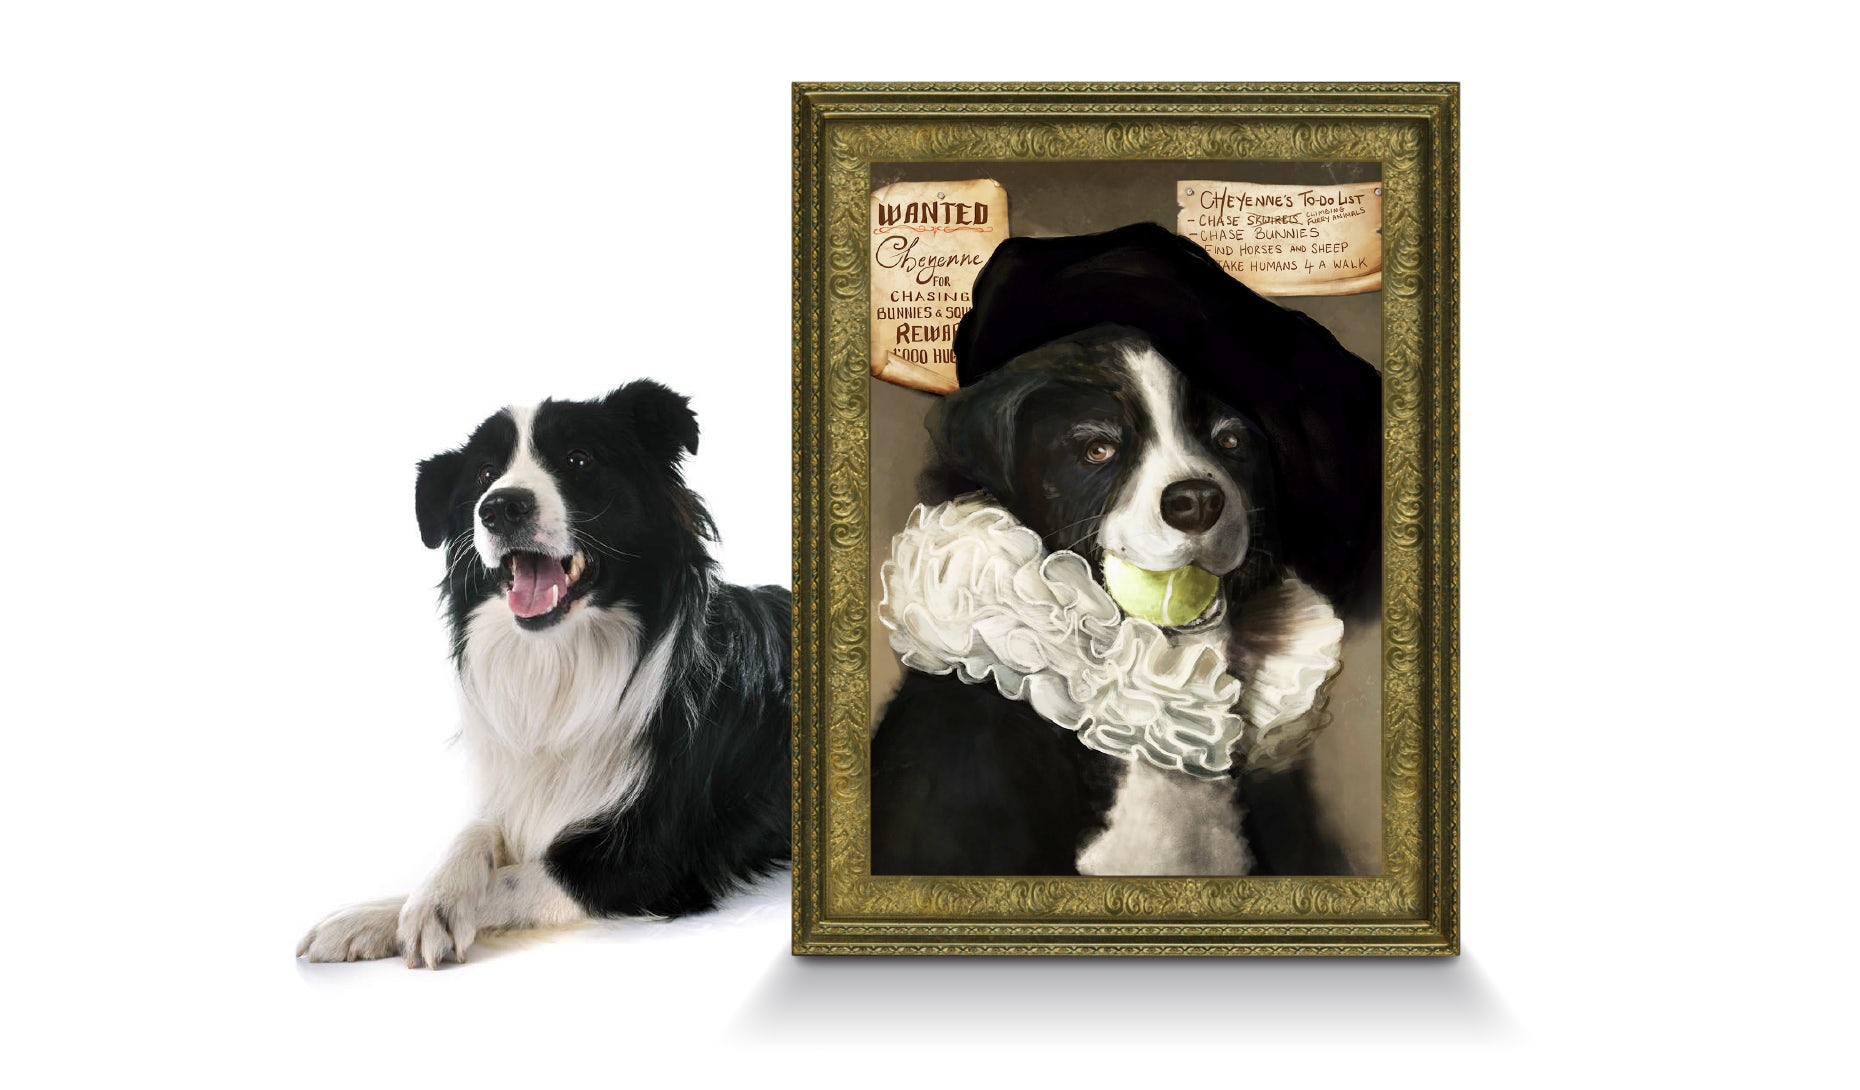 Pet portraits: how to get charming, custom artwork of your